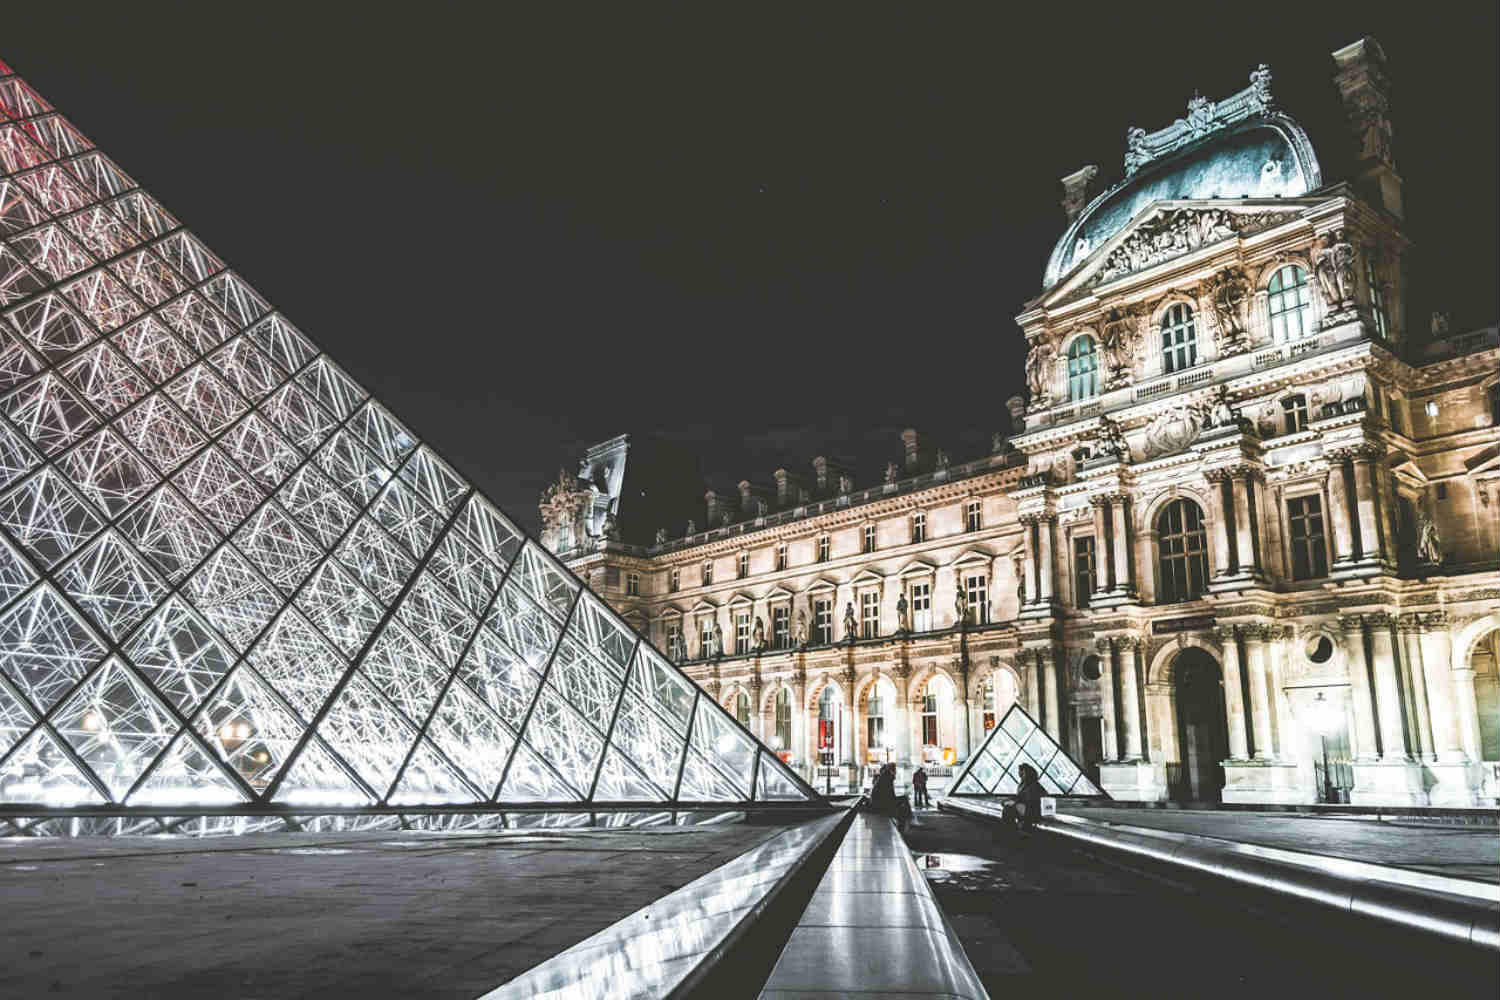 7 Interesting Facts About the Louvre Museum in Paris